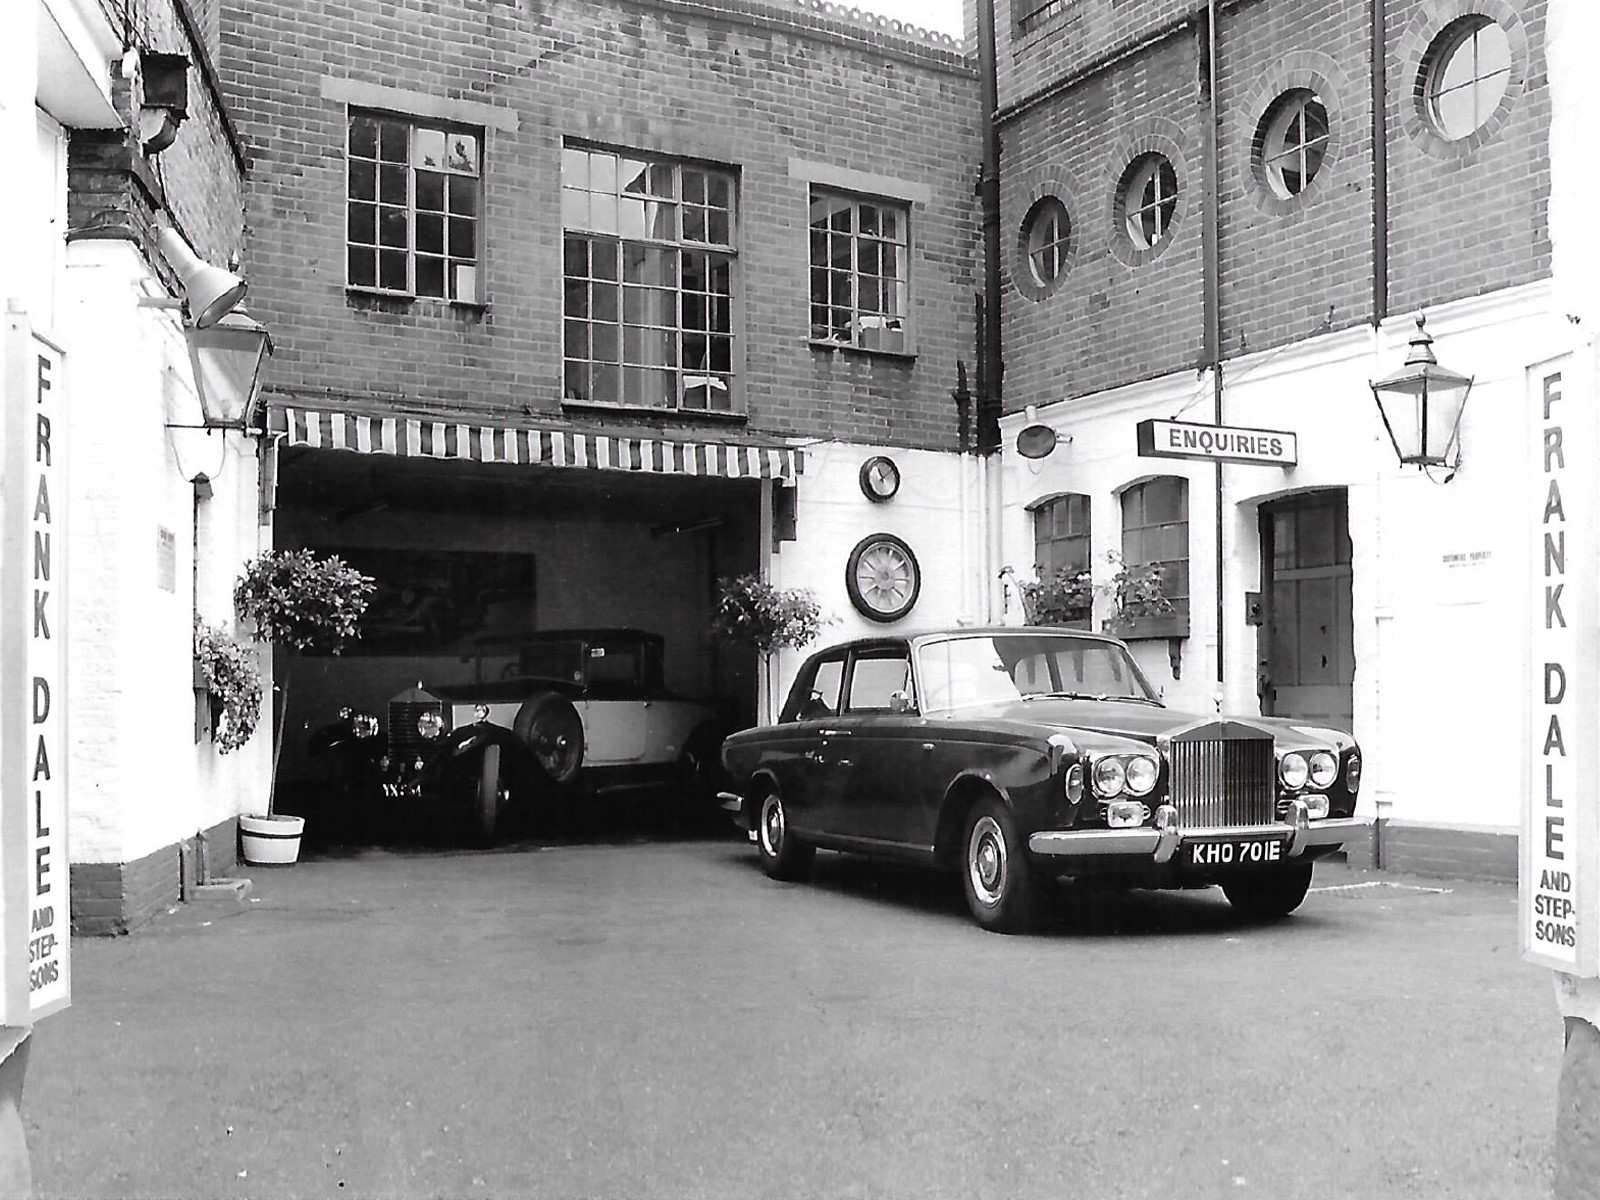 History of Frank Dale and Stepsons - Specialists in sales and maintenance of Bentley and Rolls-Royce cars